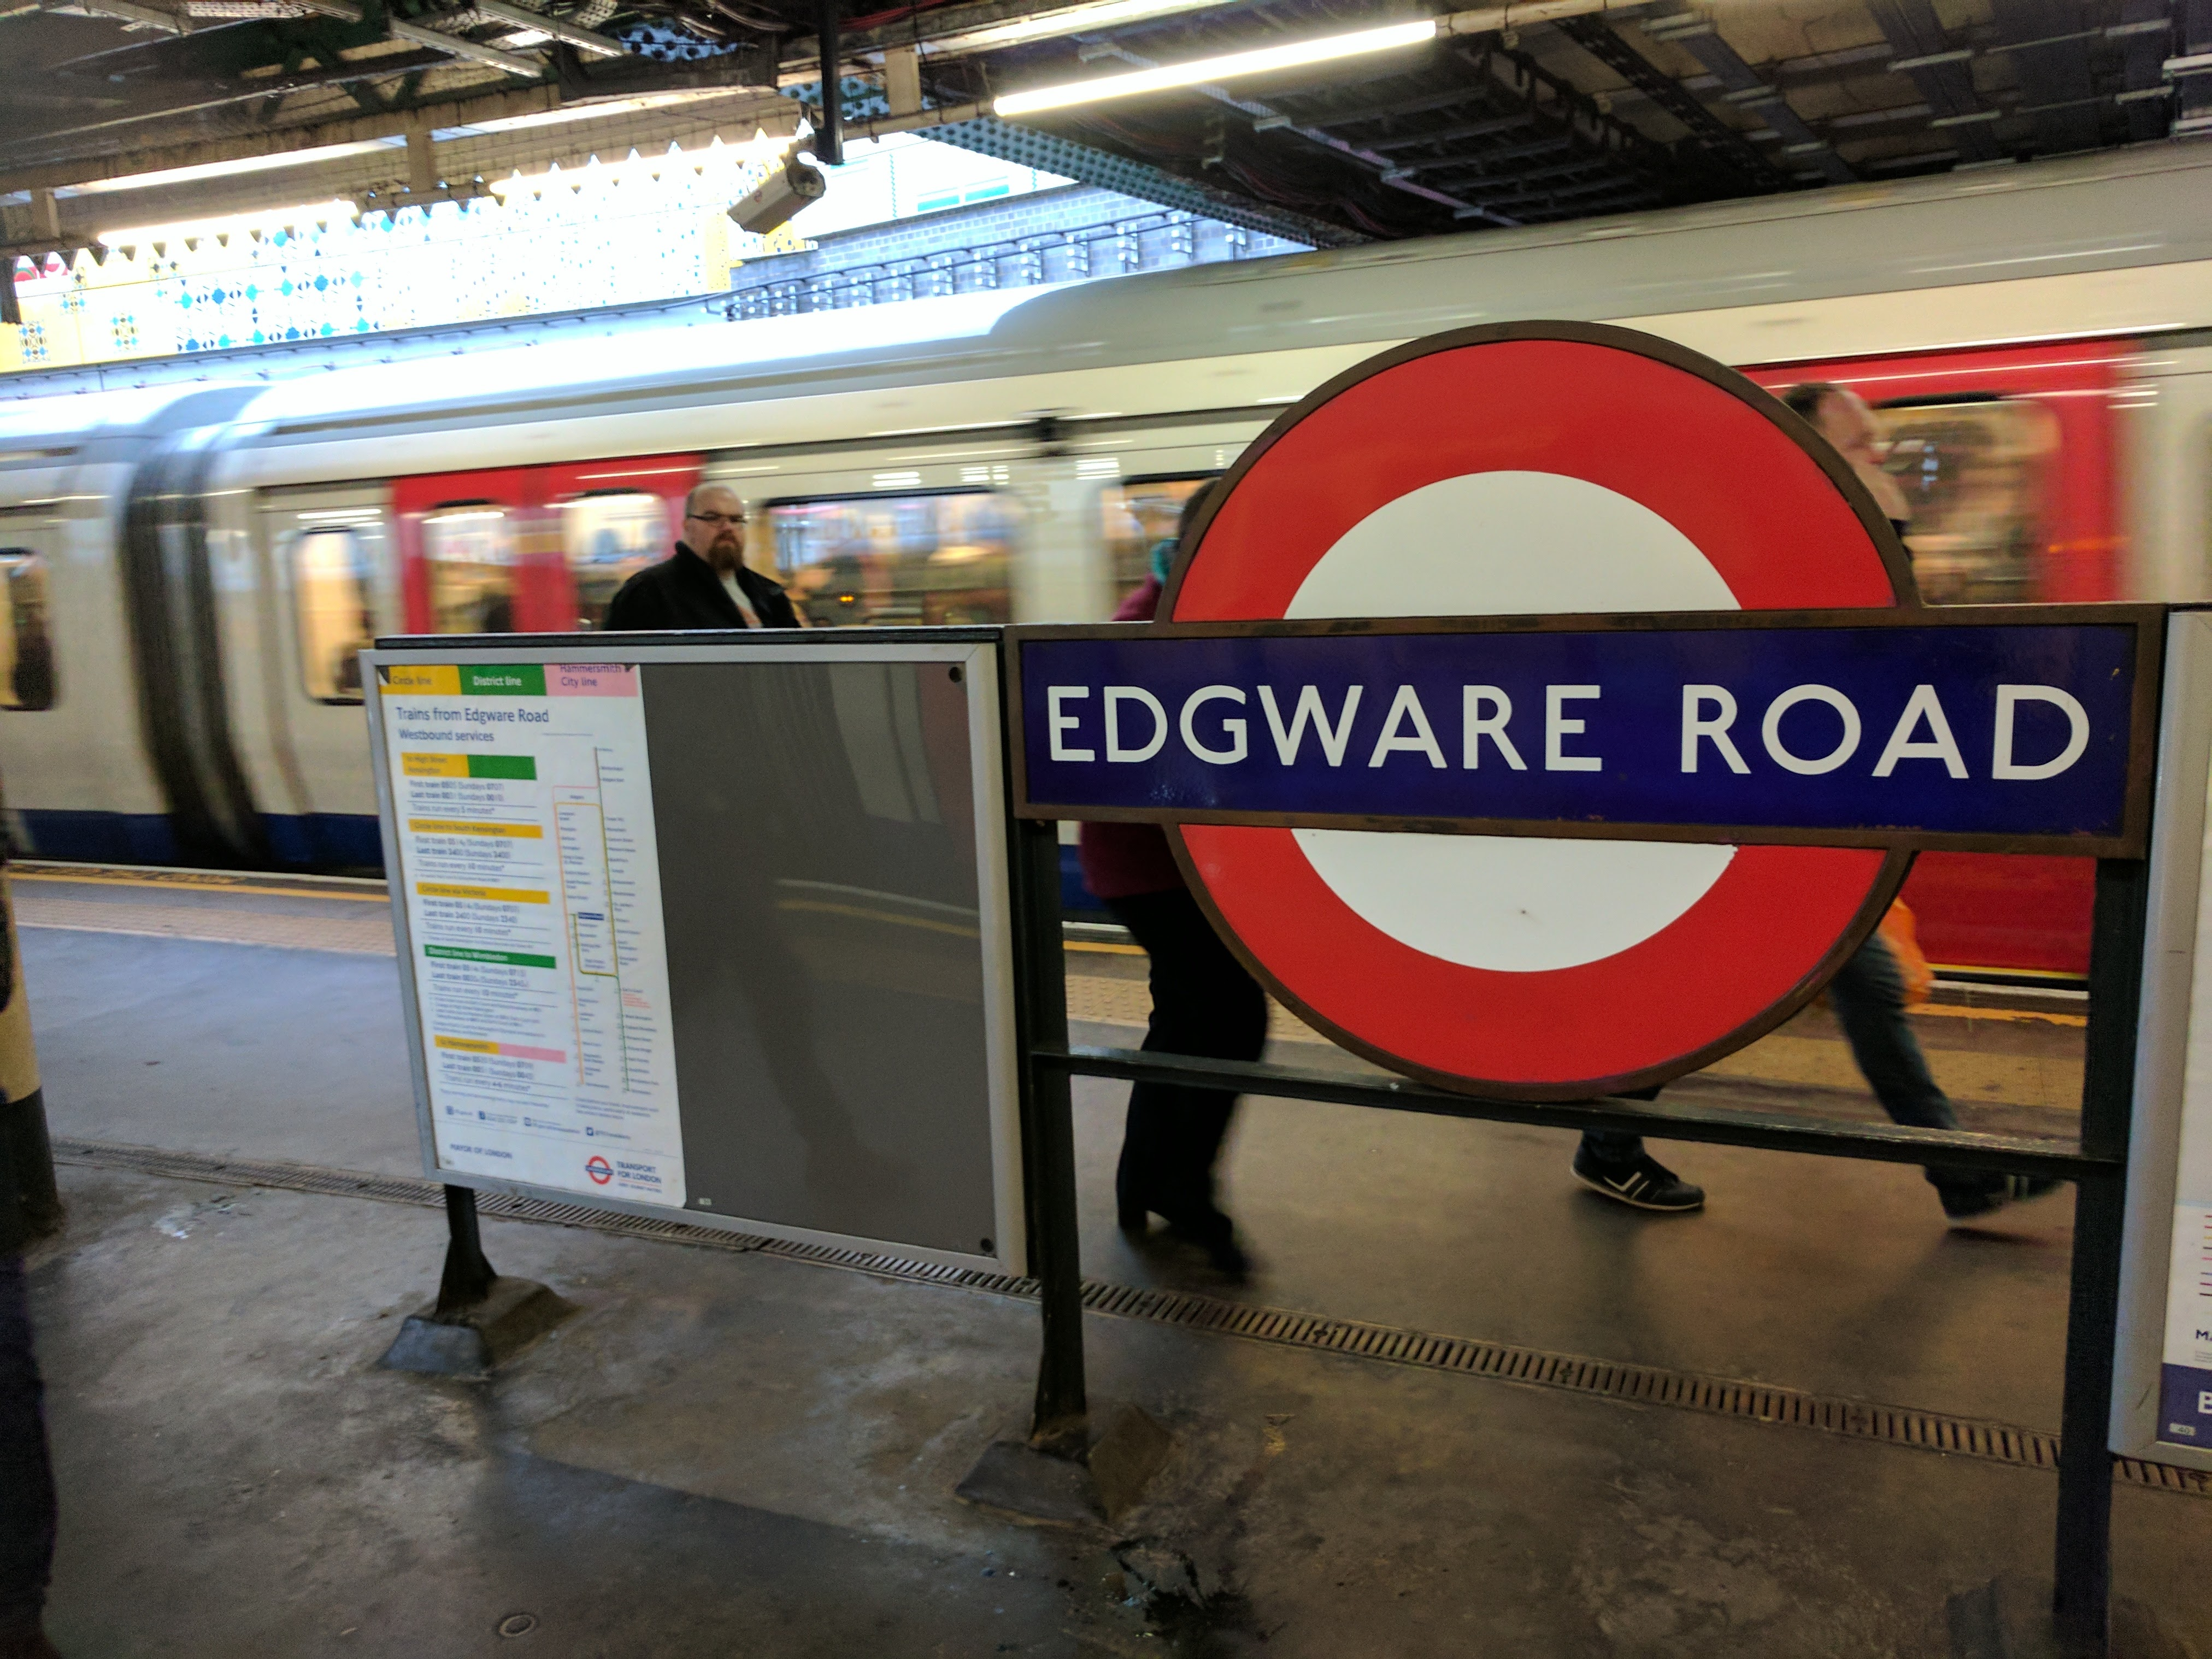 Platform changes: Edgware Road Circle line